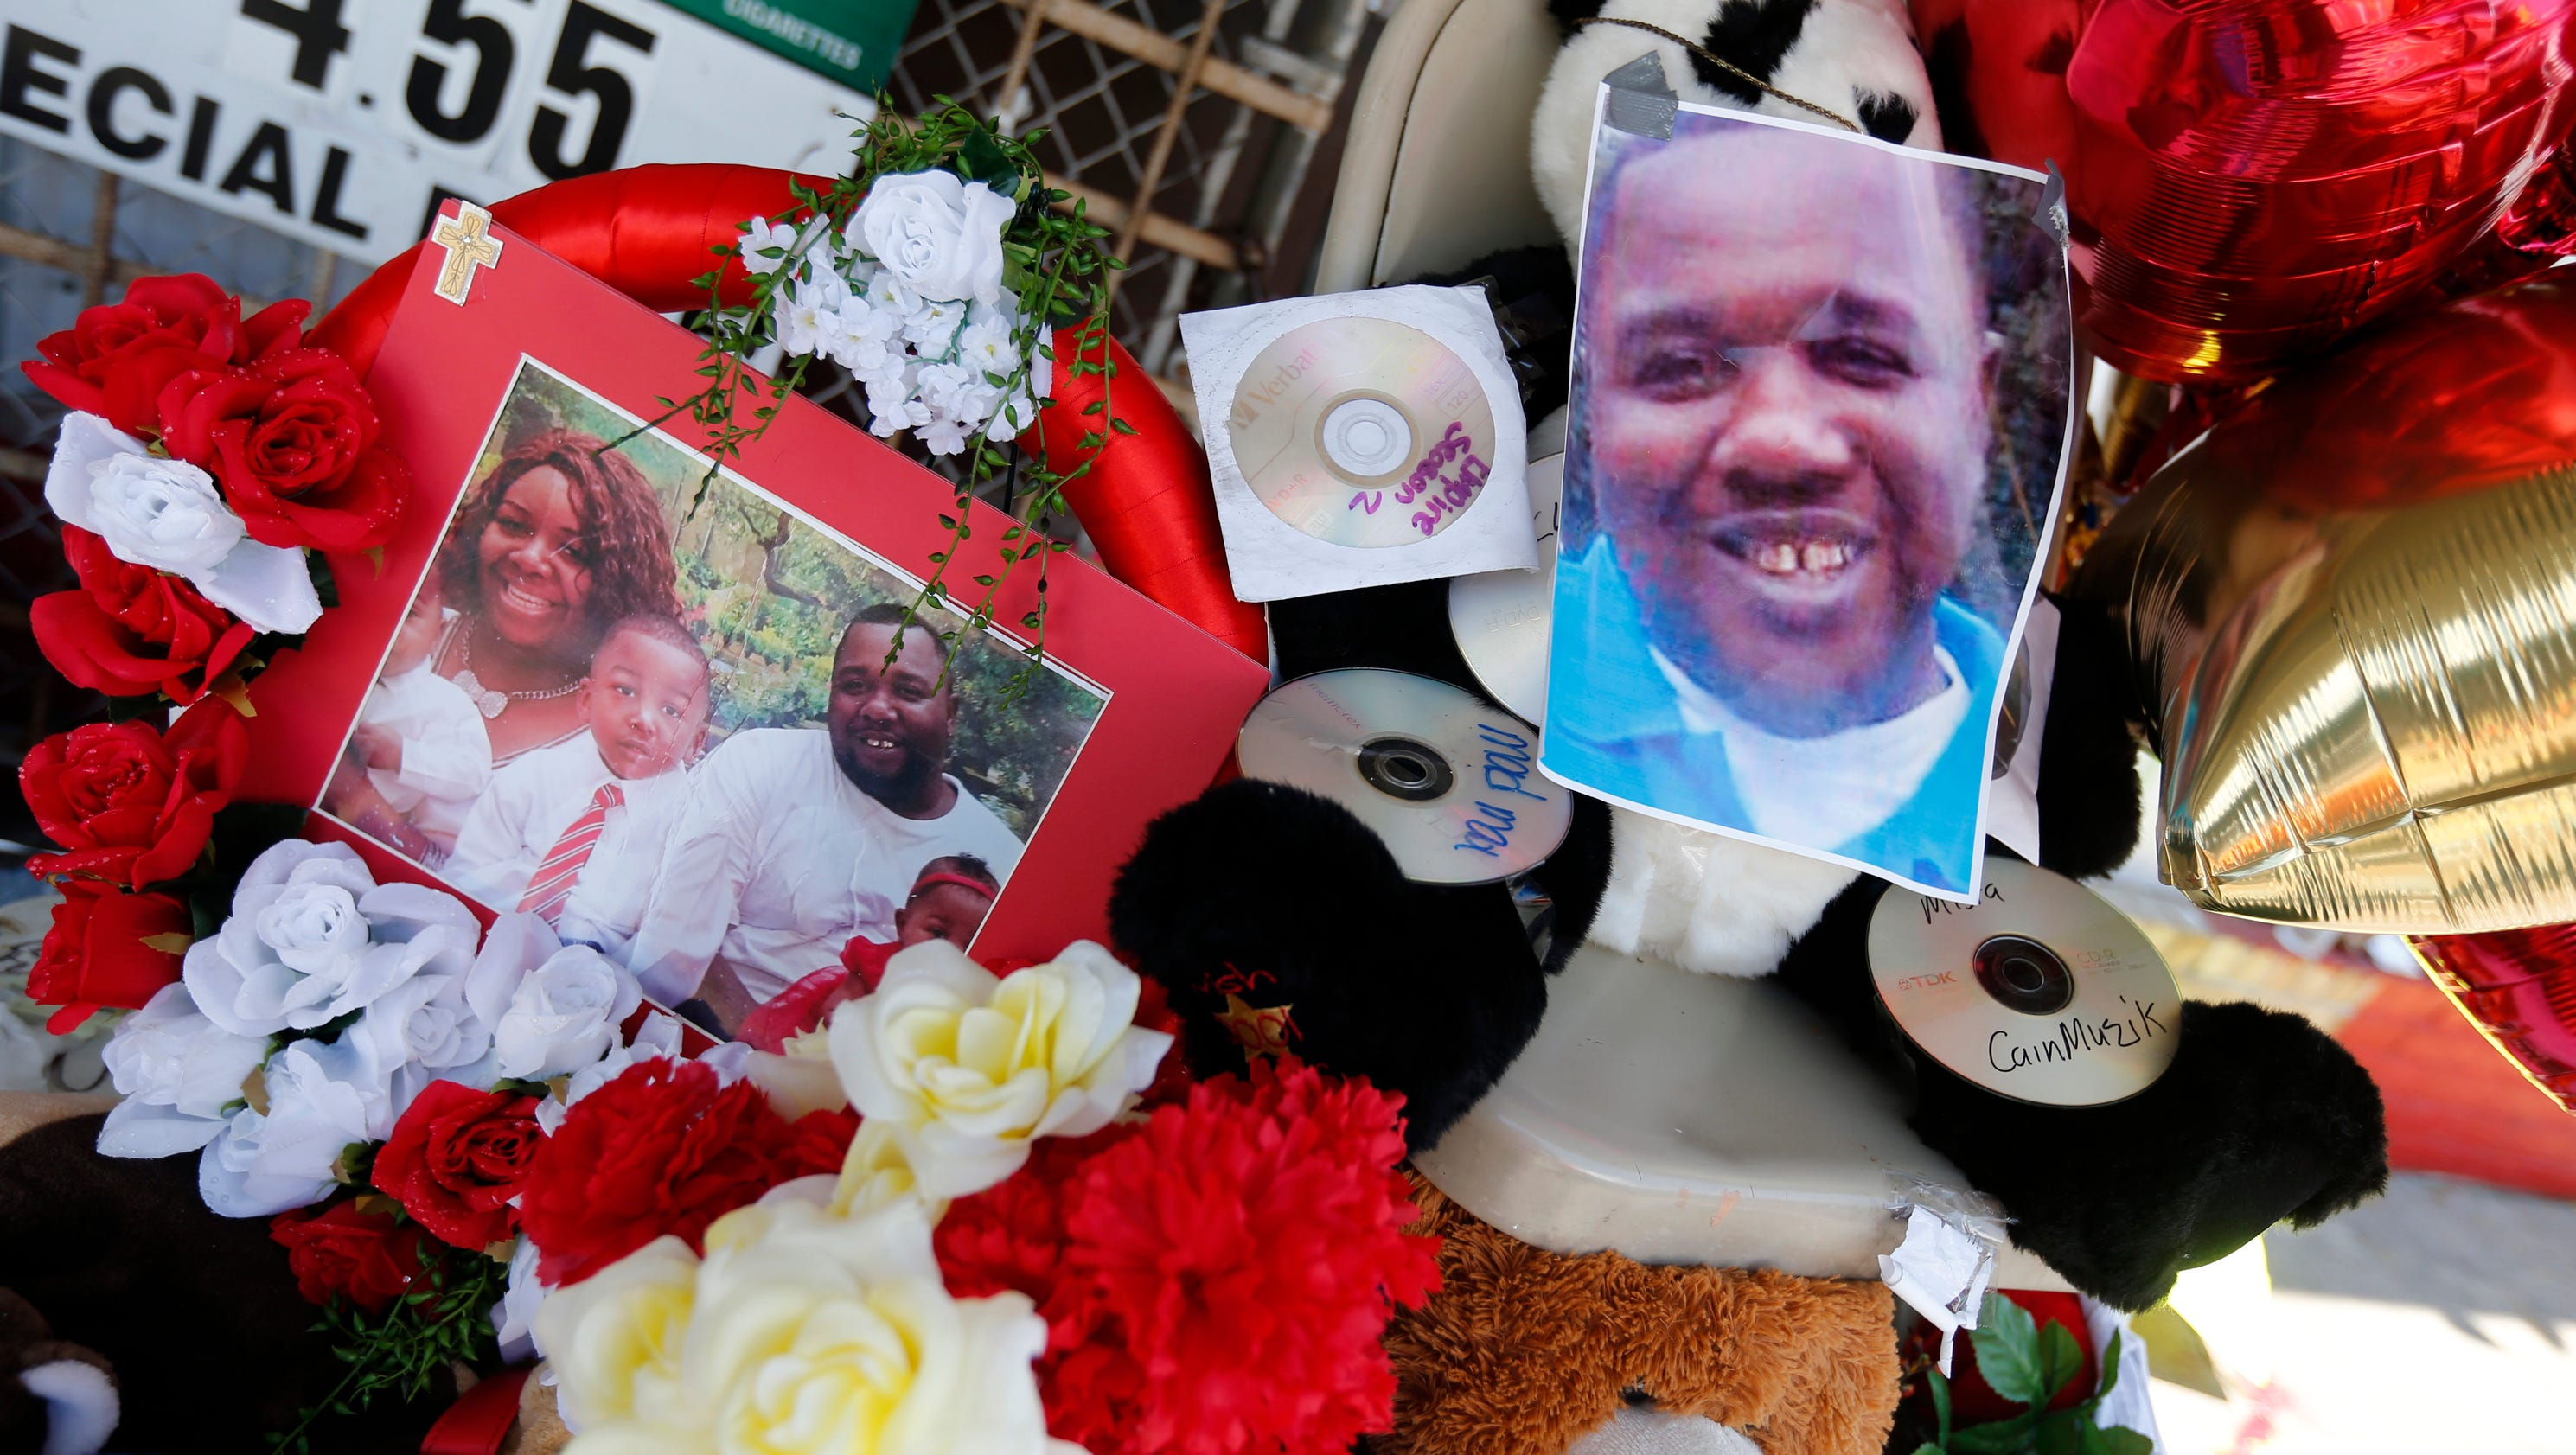 Public funeral scheduled for Alton Sterling